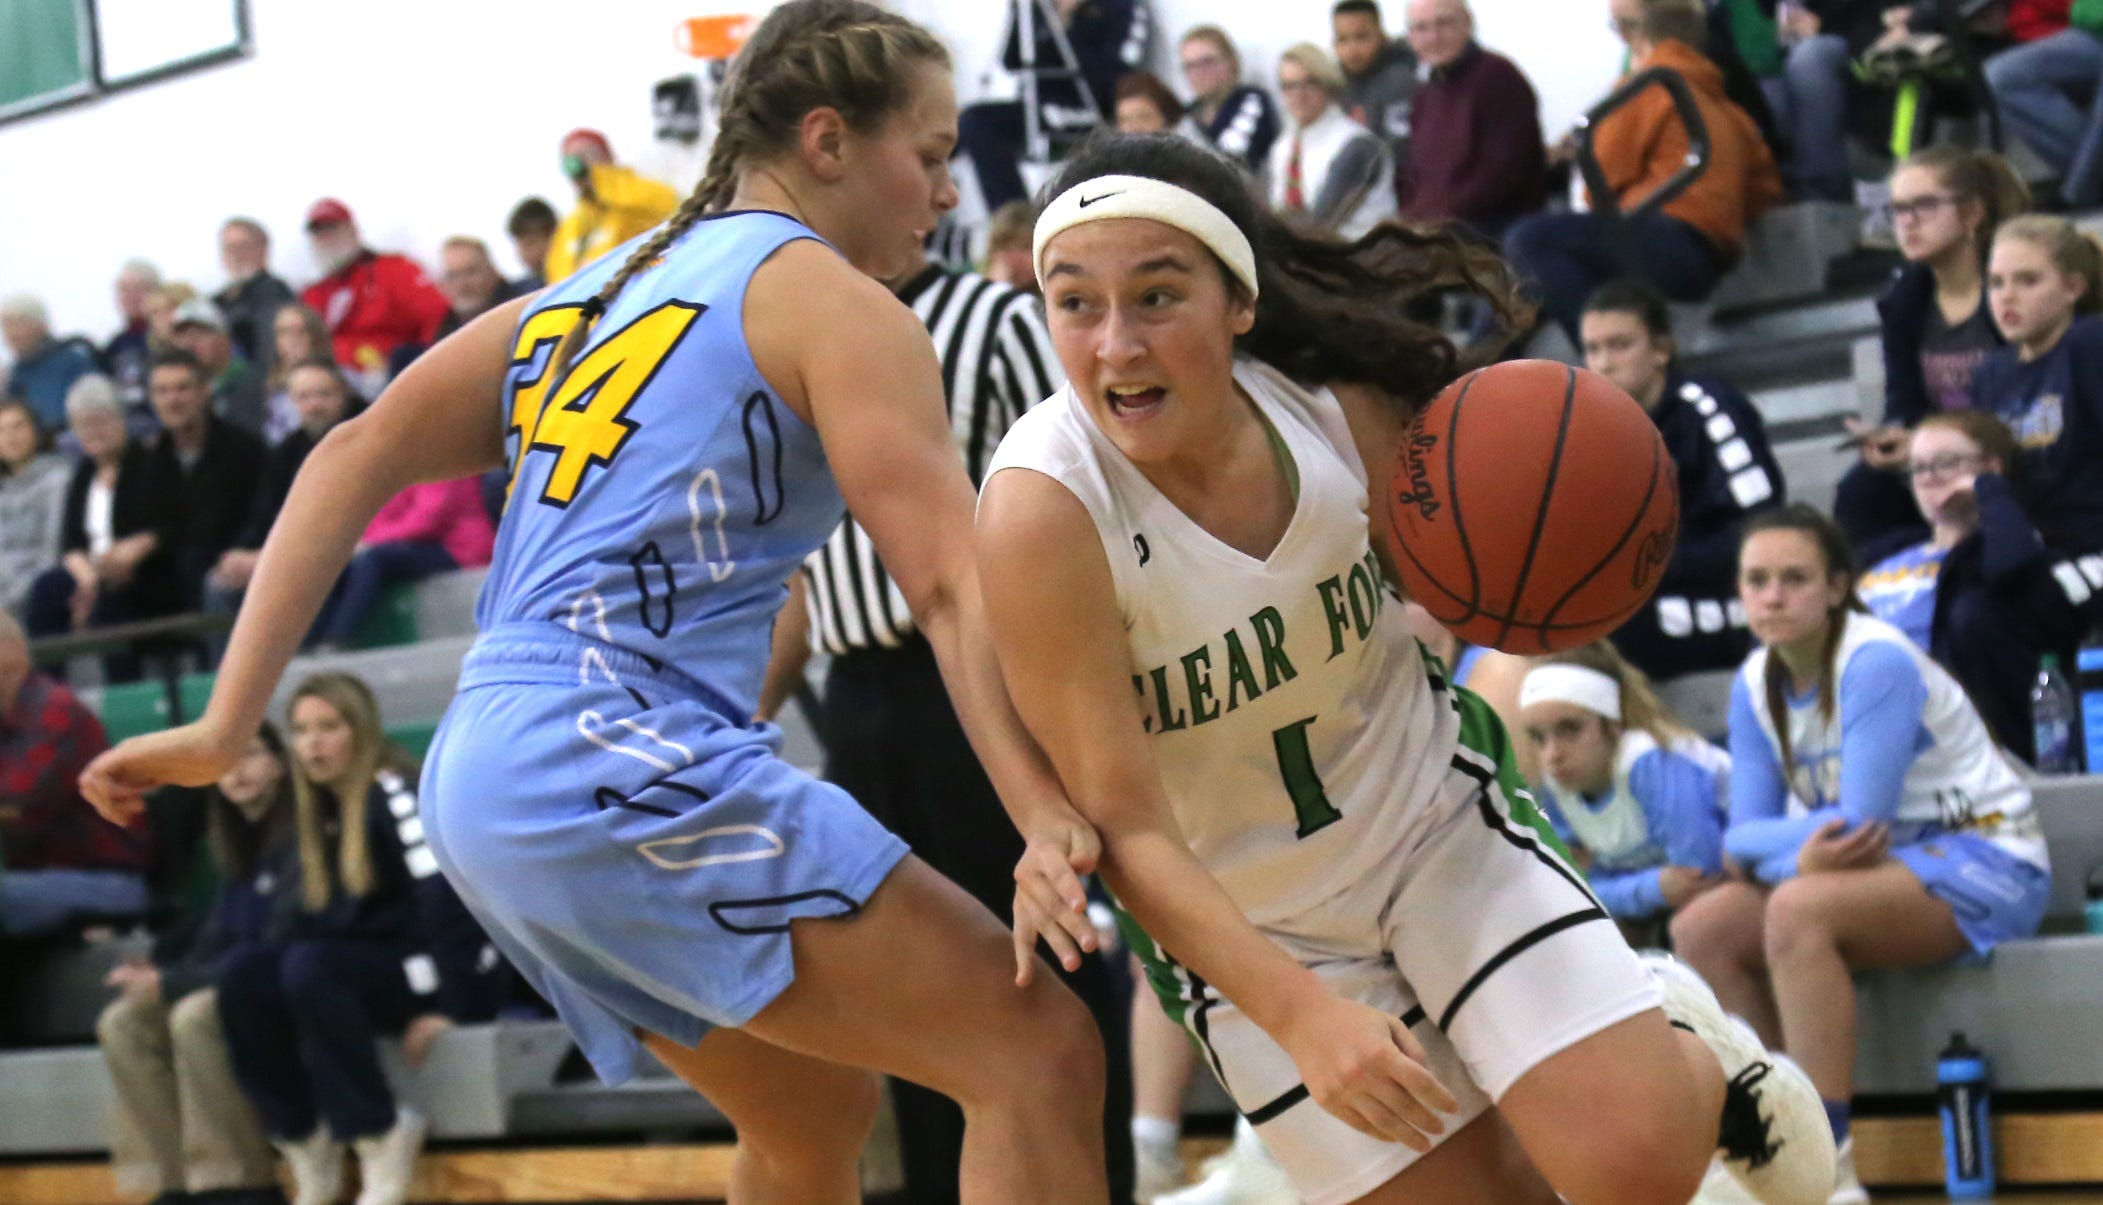 Girls Basketball: River Valley 47, Clear Fork 37